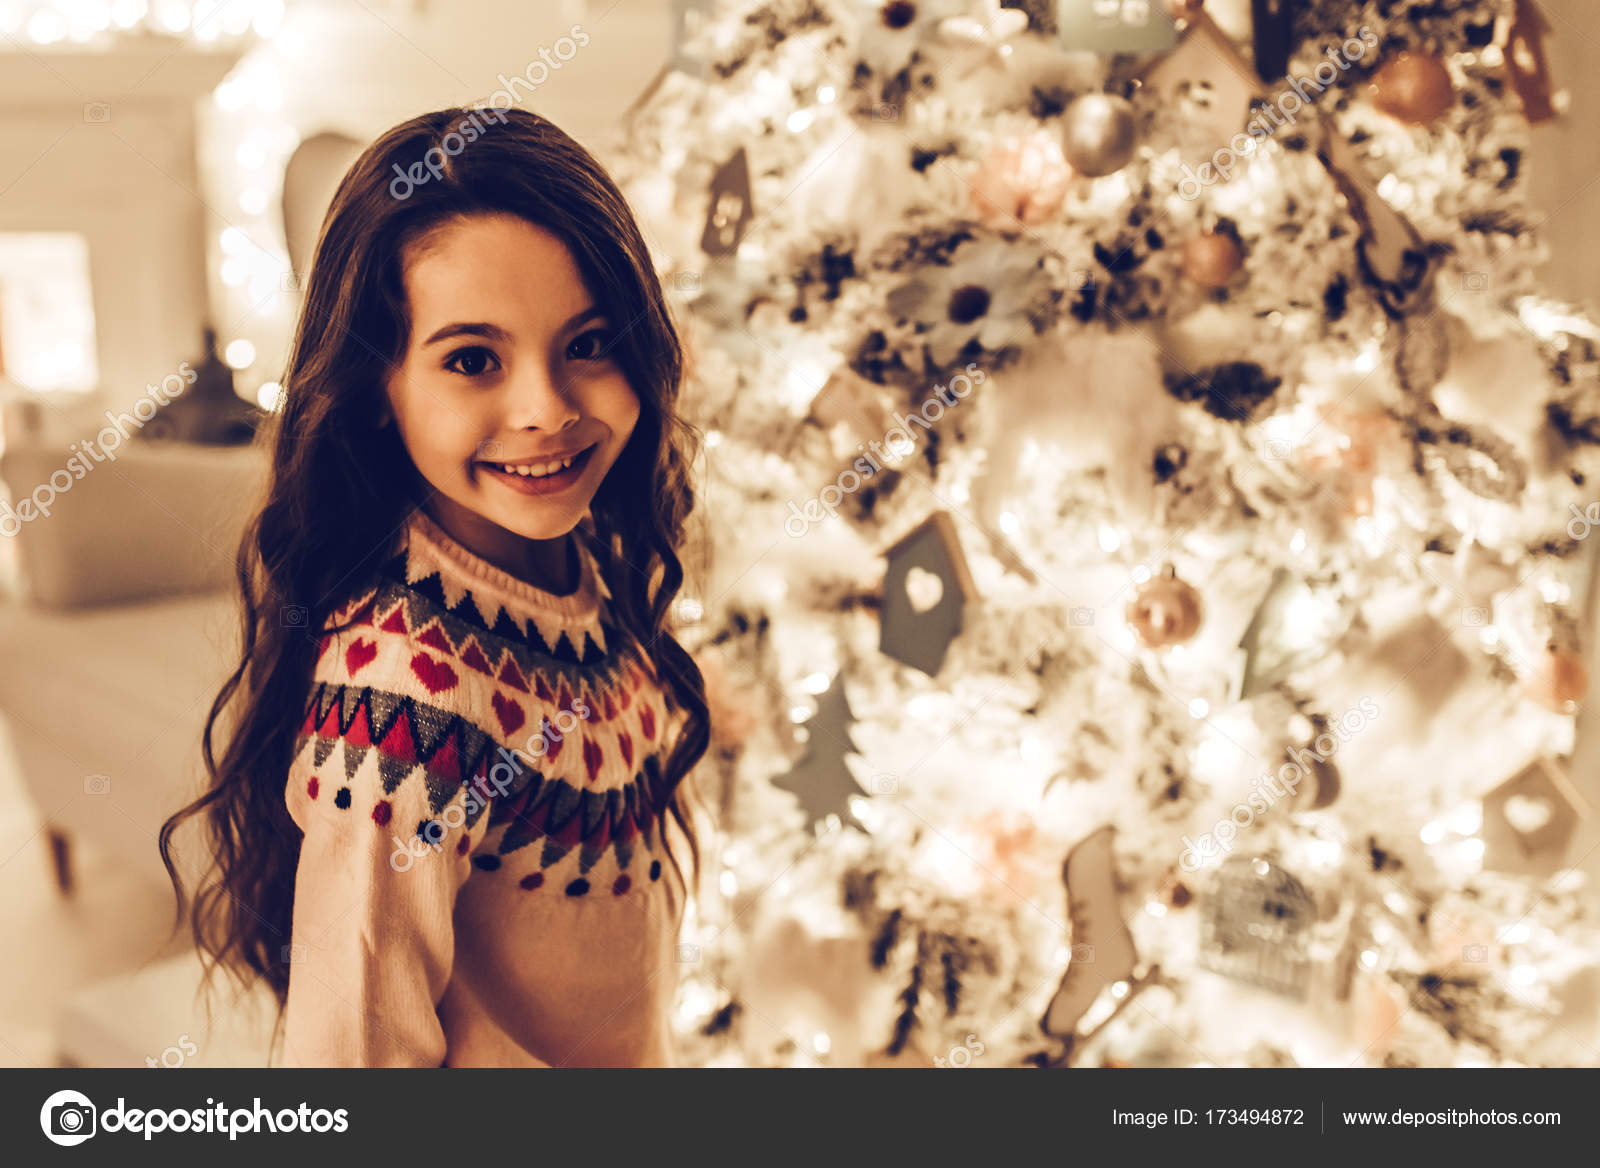 Girl On New Year S Eve Stock Photo C 4pmphoto Gmail Com 173494872